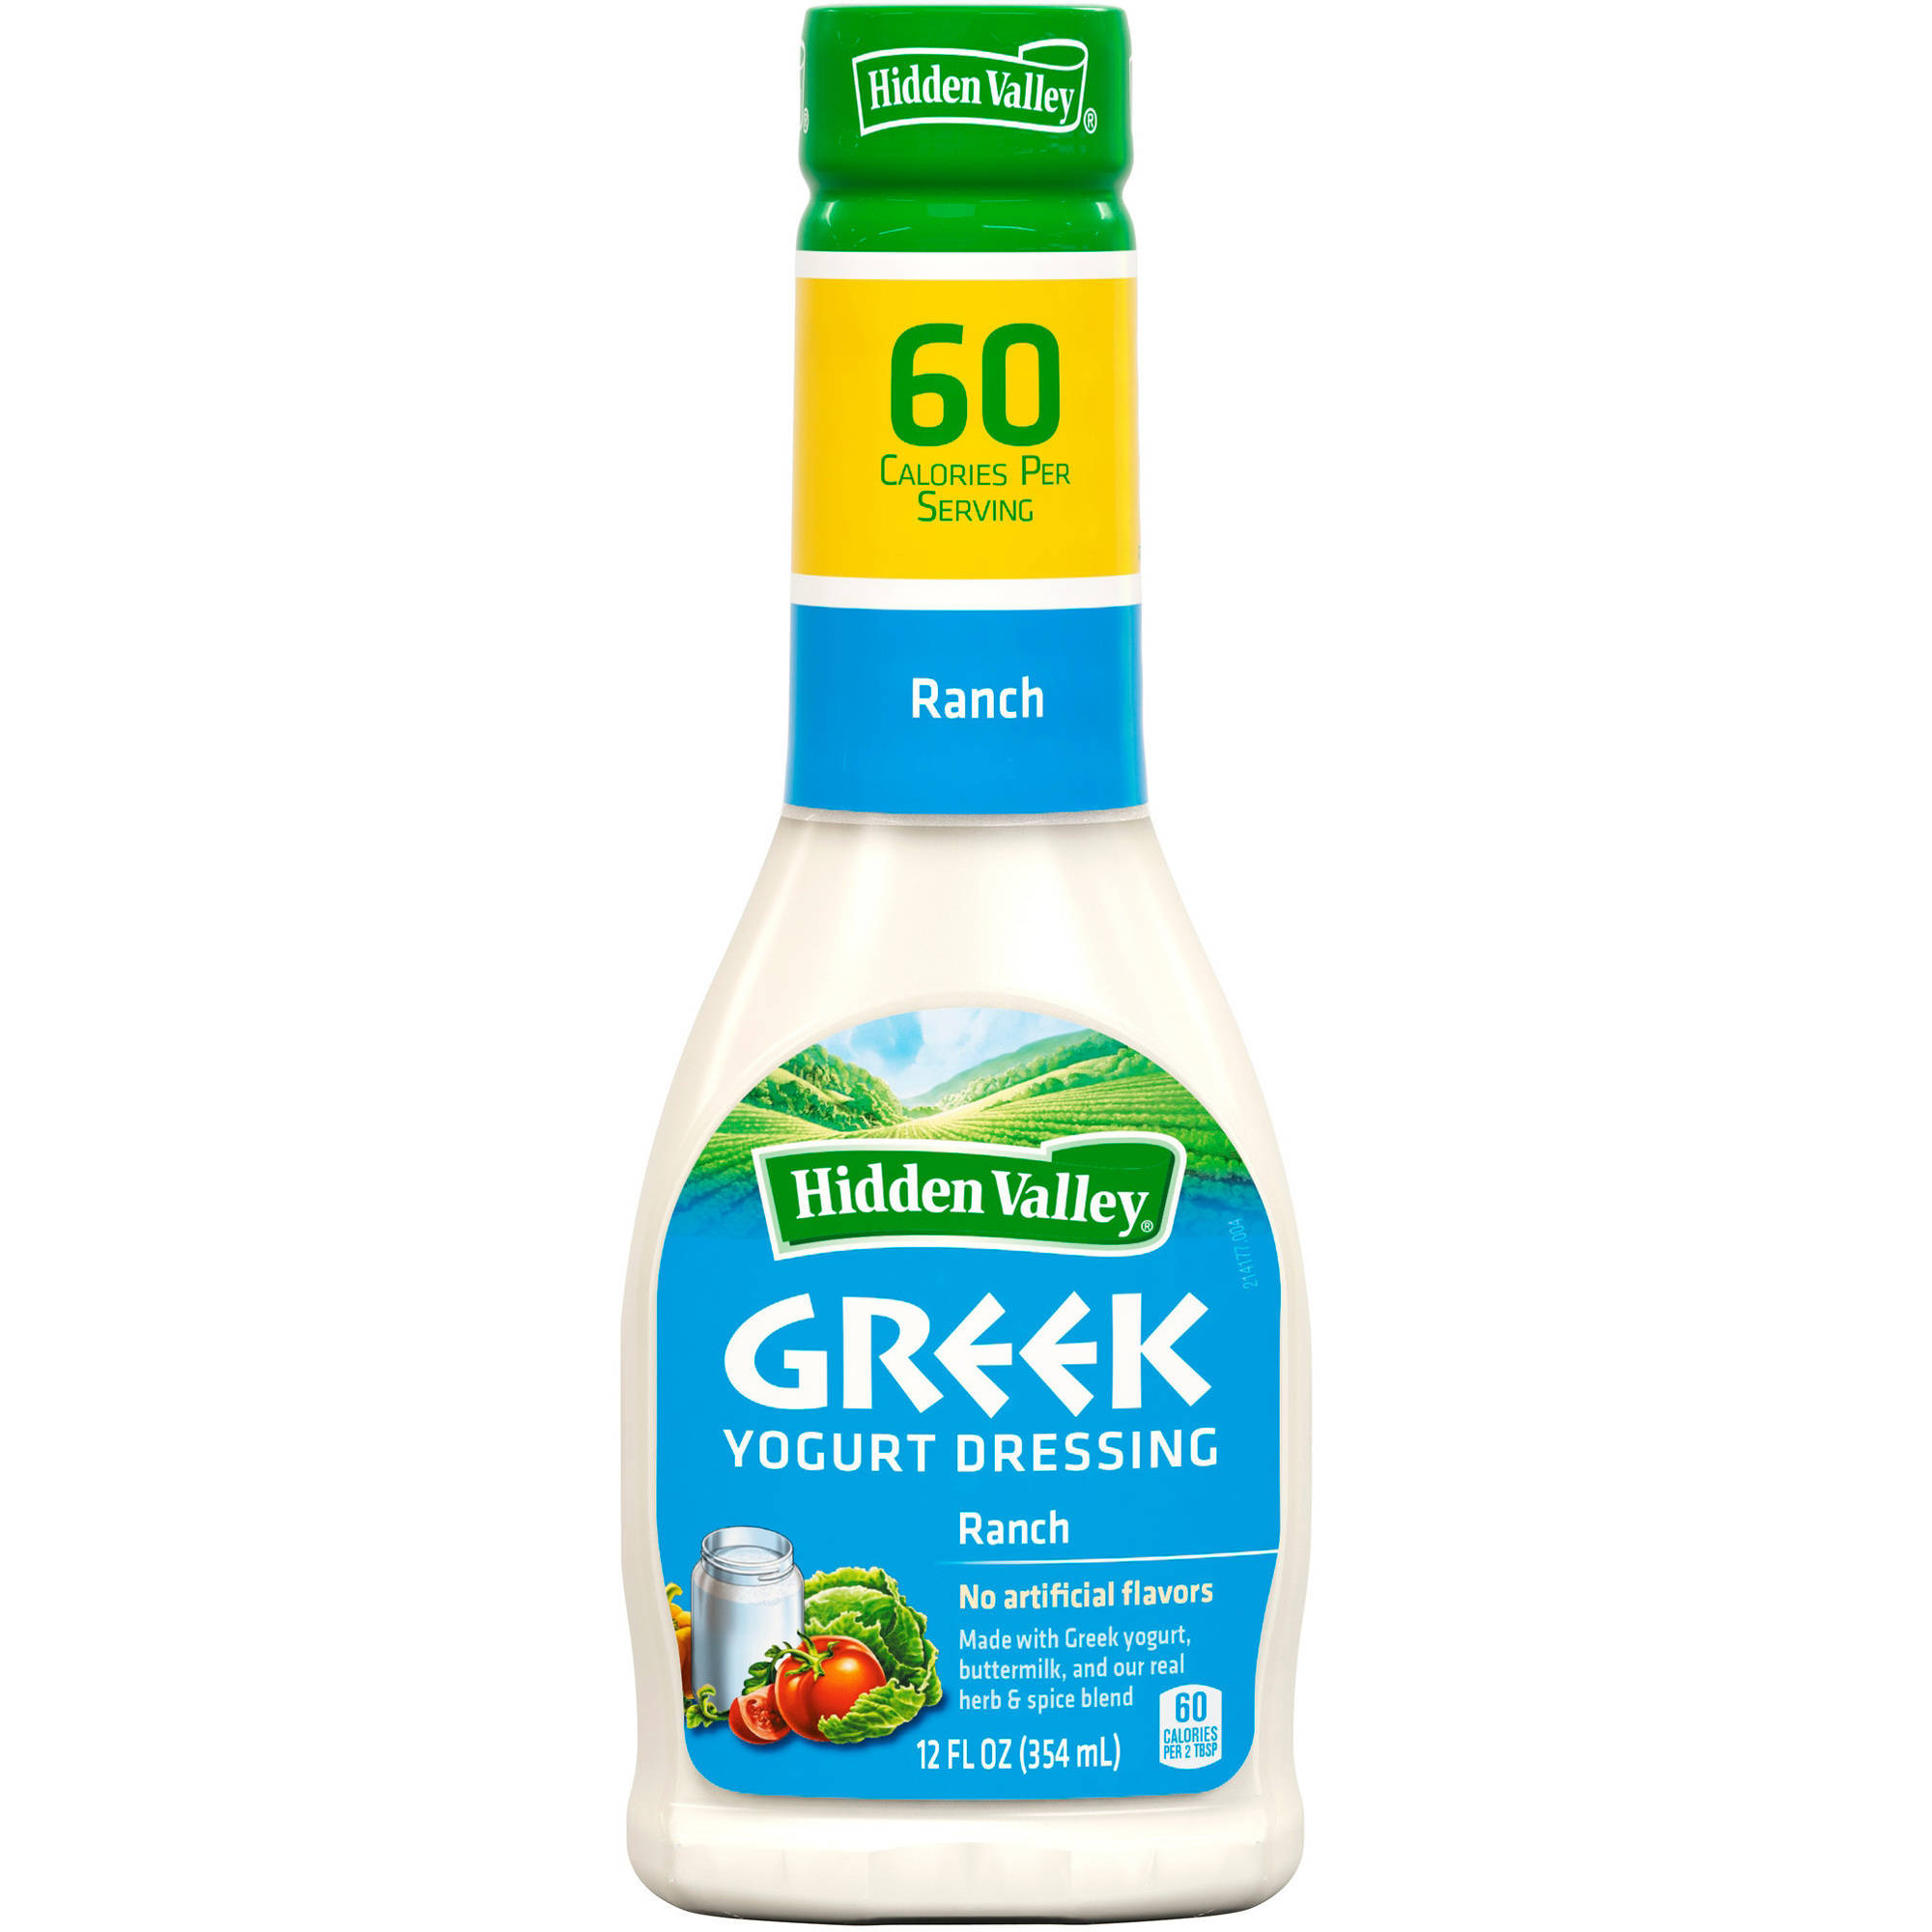 Hidden Valley Ranch Greek Yogurt Dressing, 12 fl oz